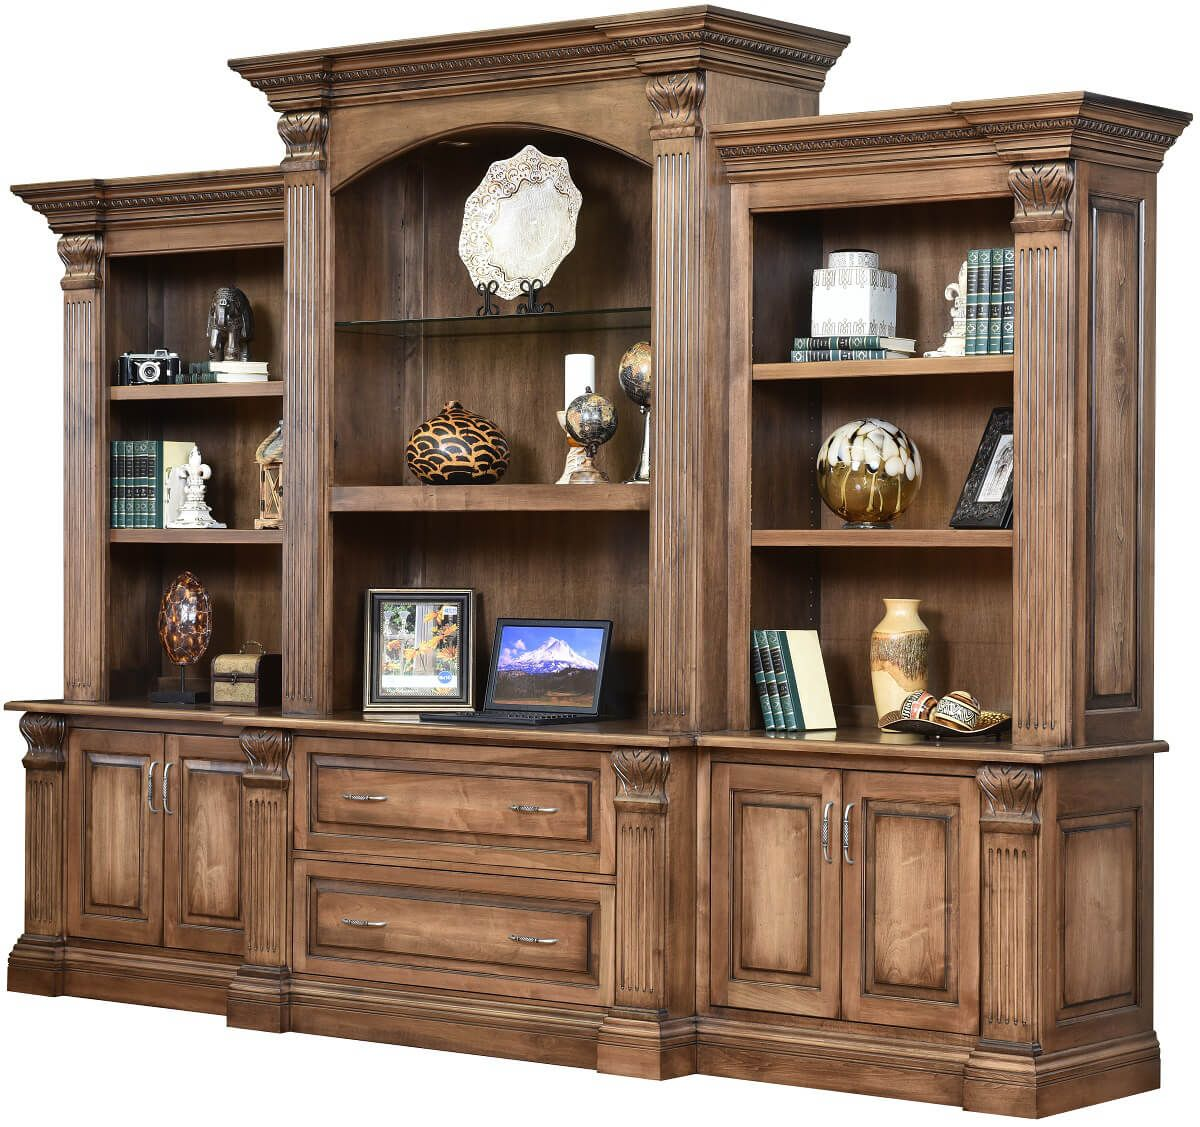 Fairbanks Bookcase Credenza